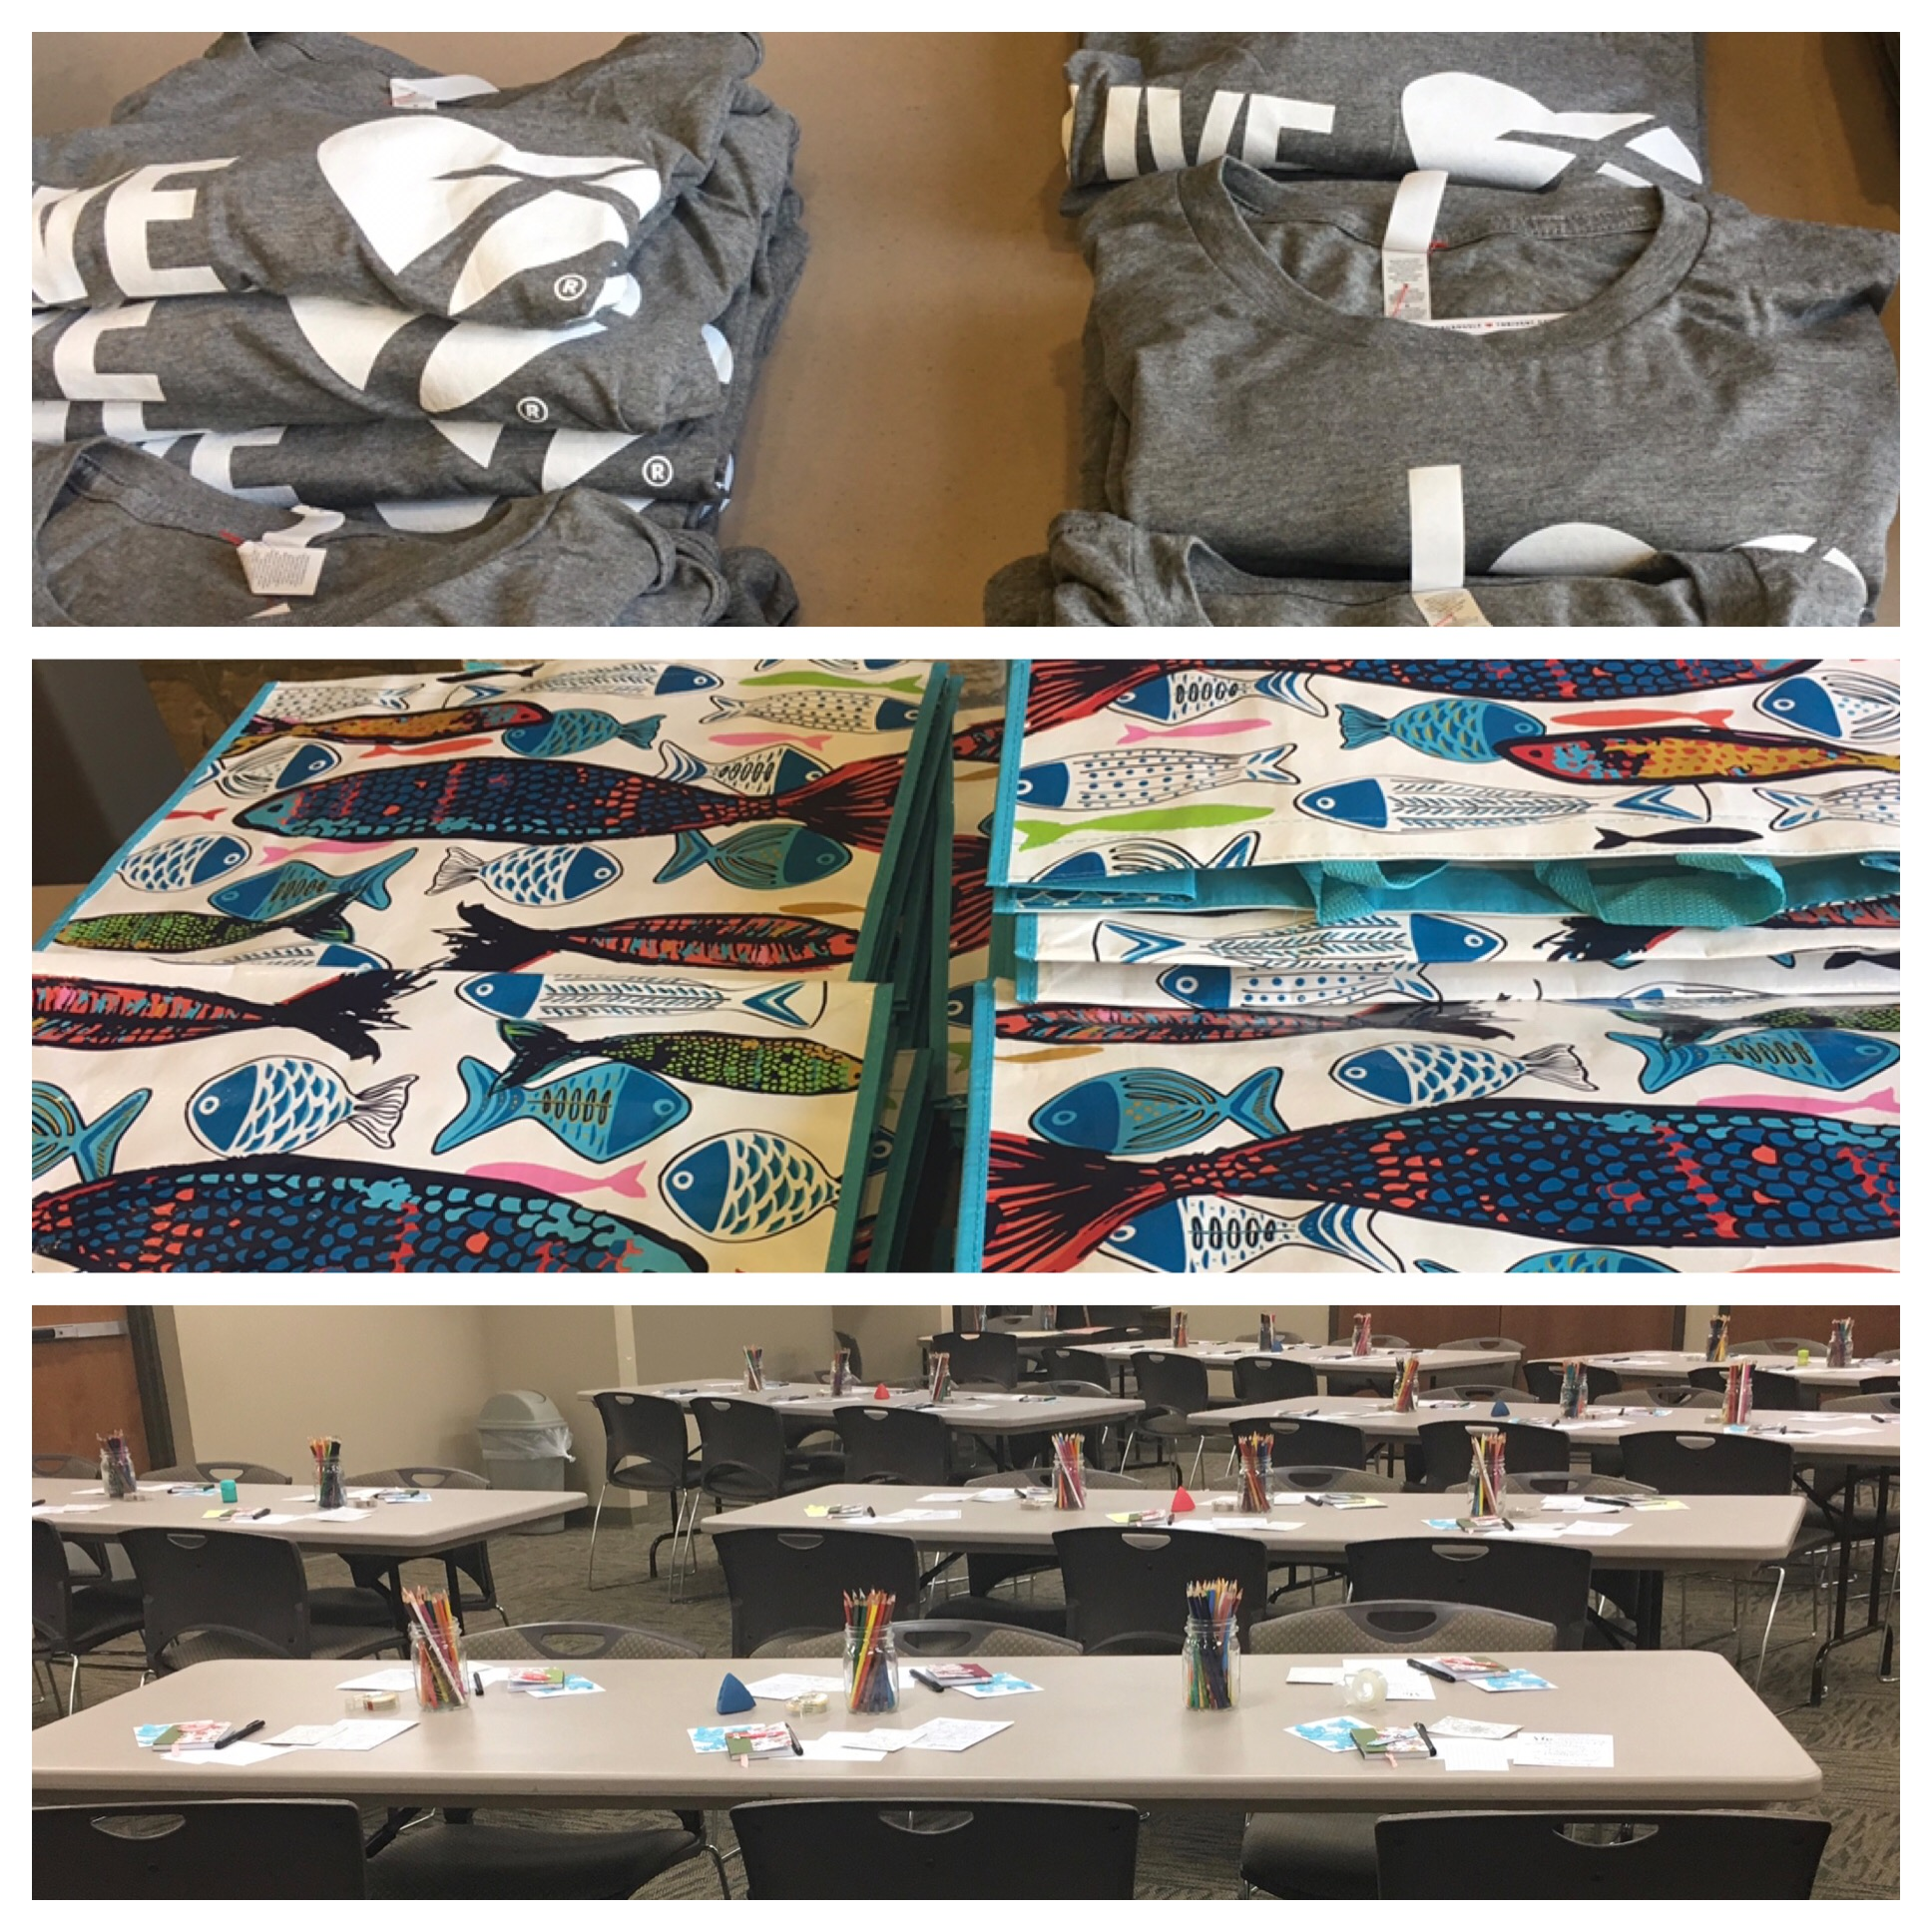 Emmanuel Lutheran Church in Fort Wayne, Indiana hosted a Visual Faith event on April 27, 2019.  Thrivent Grants were a big help in putting together the event. Bags all ready to gift to those attending.  Tables set ready to welcome those coming for the Saturday event.